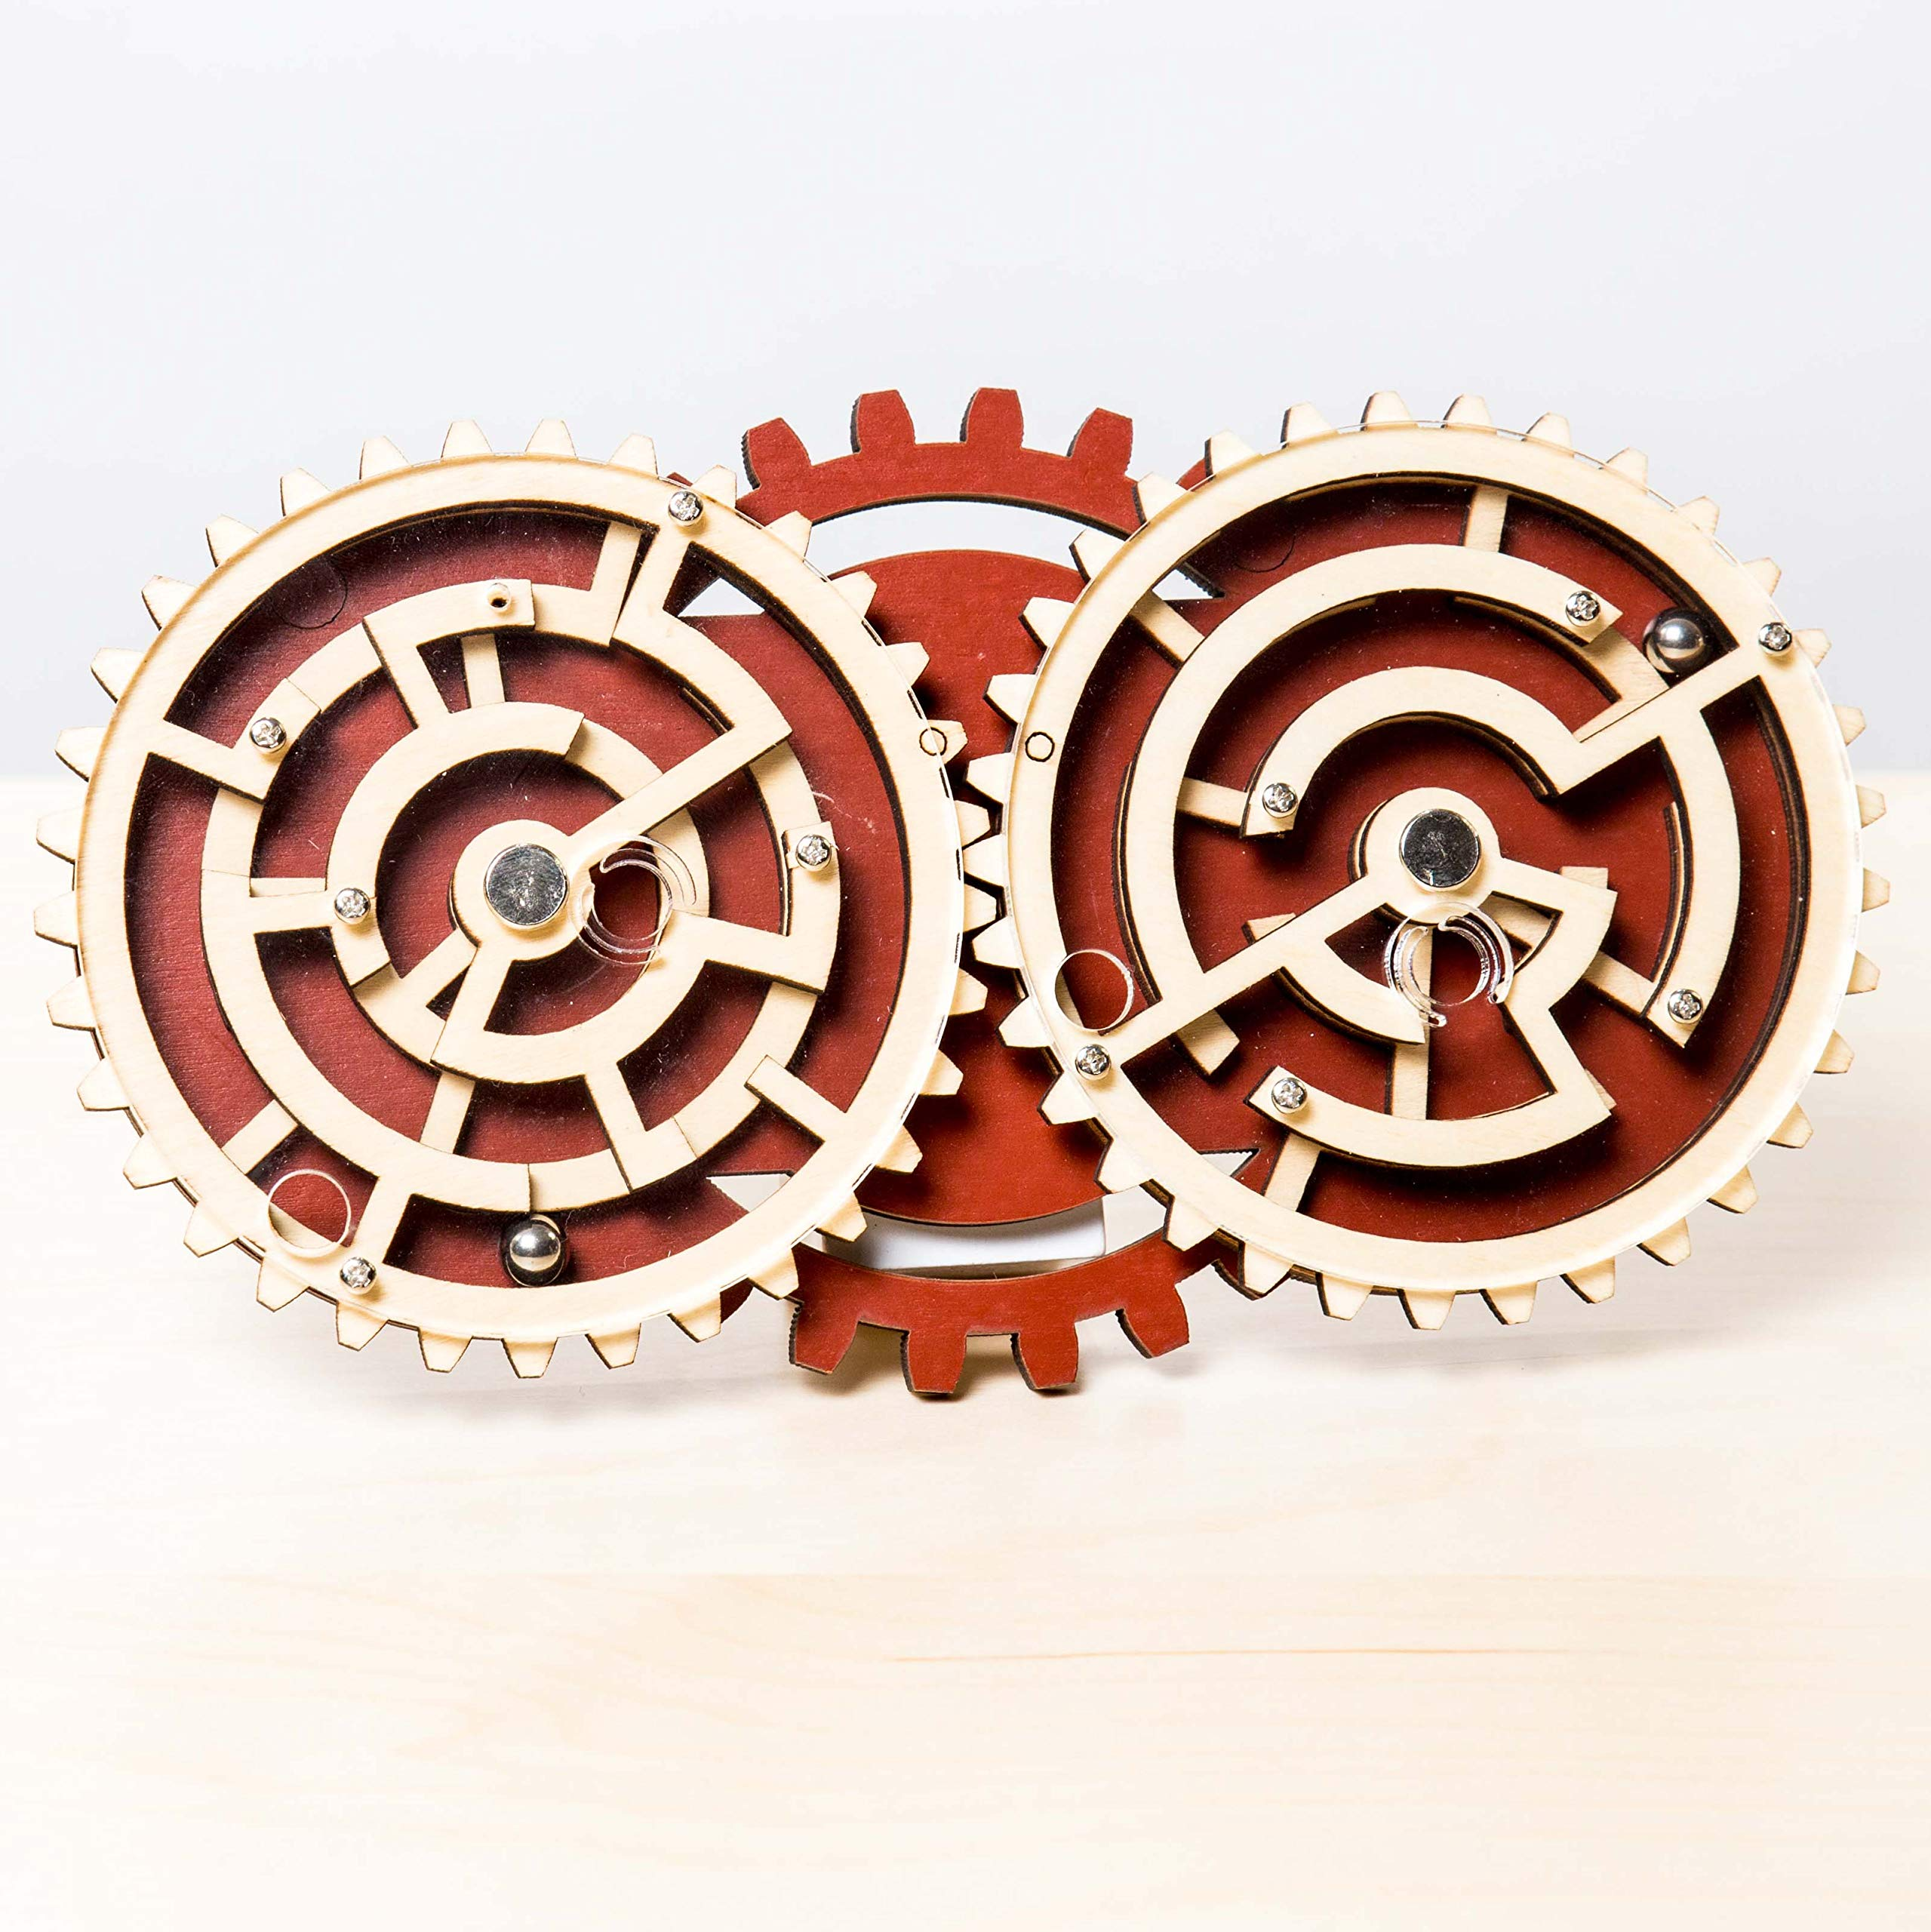 Project Genius Jc005 Brain Teaser Puzzle, Wooden by Project Genius